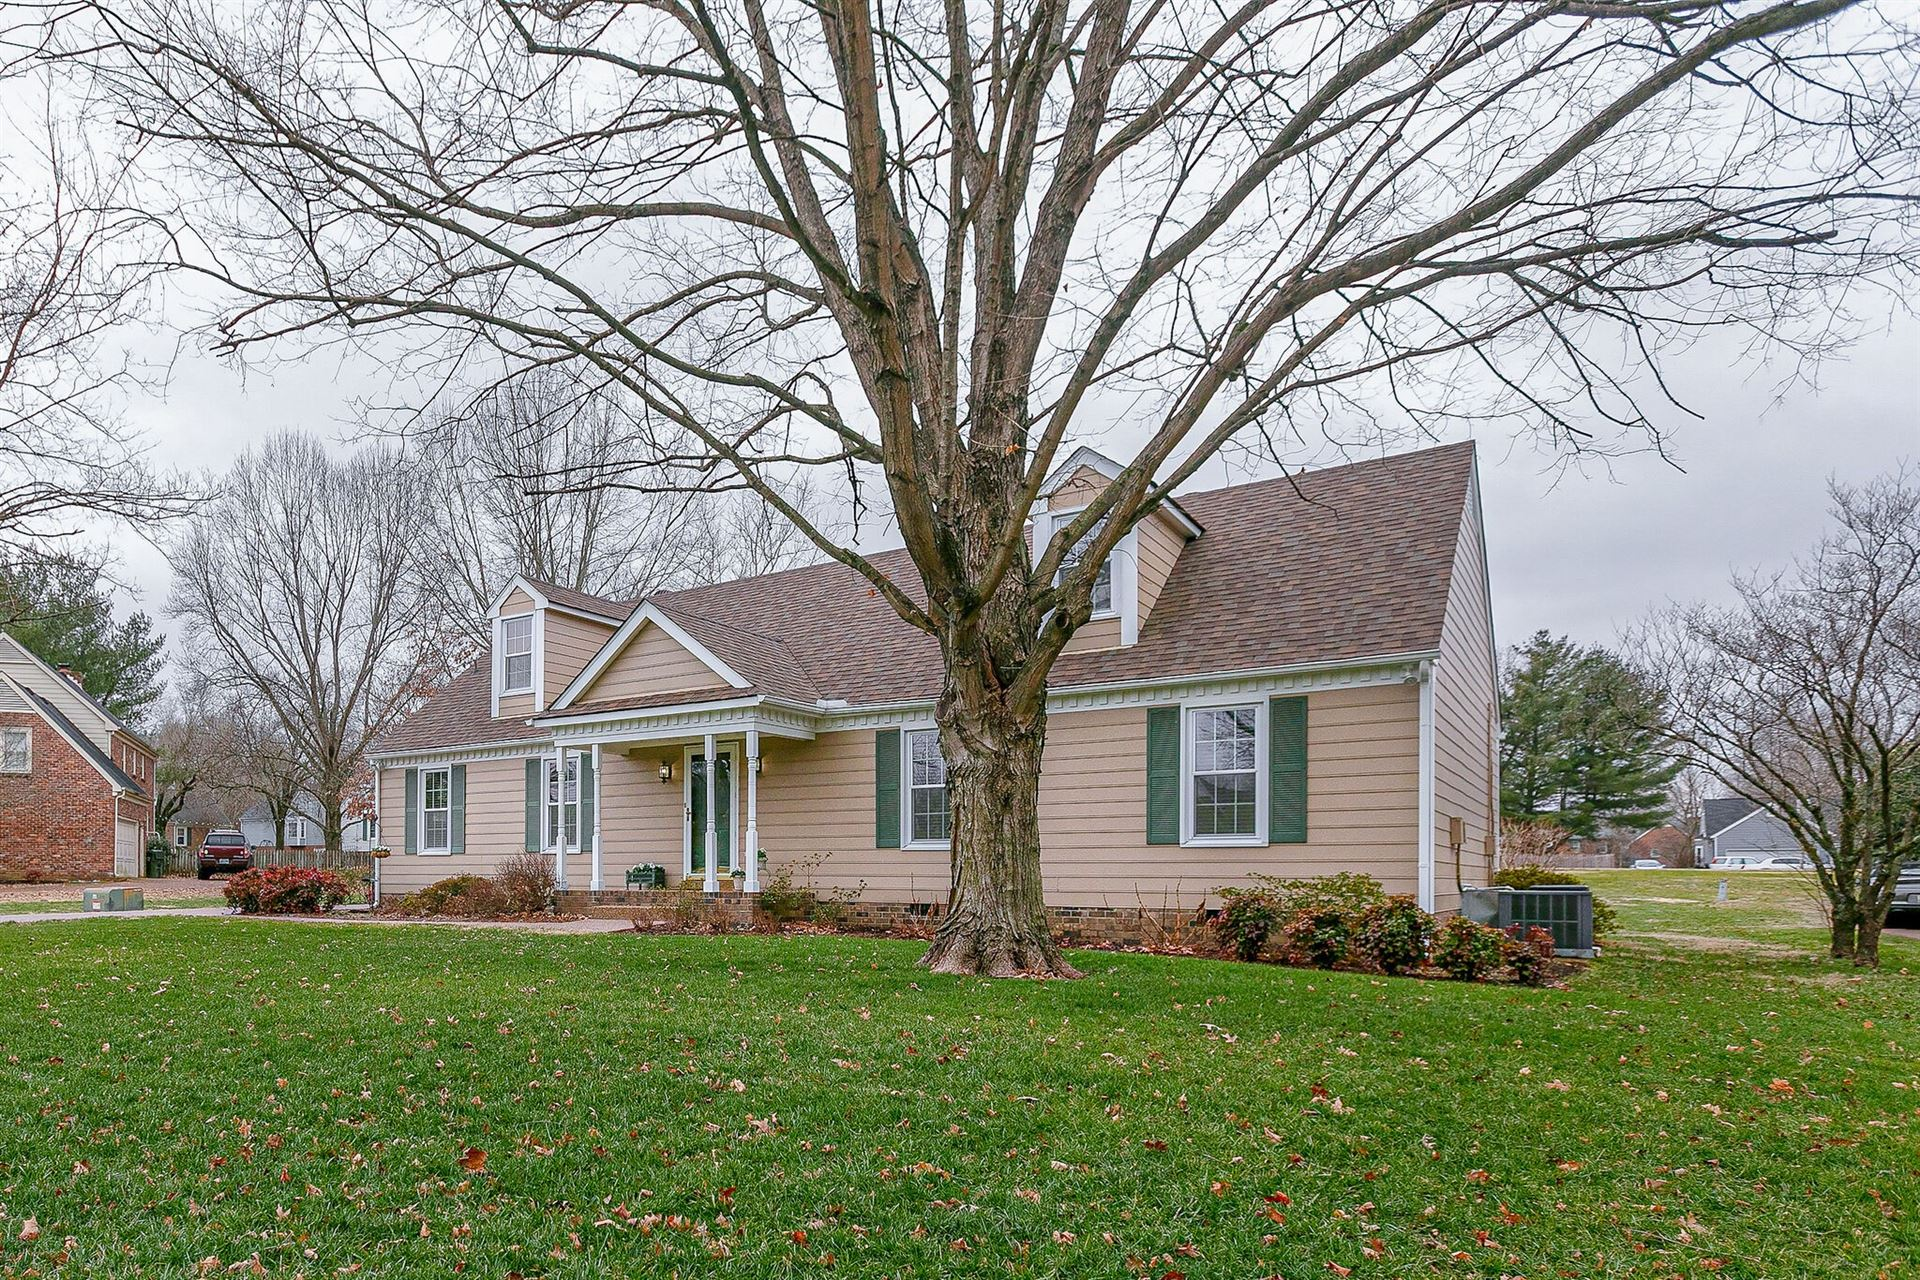 Photo of 324 Cotton Ln, Franklin, TN 37069 (MLS # 2219196)